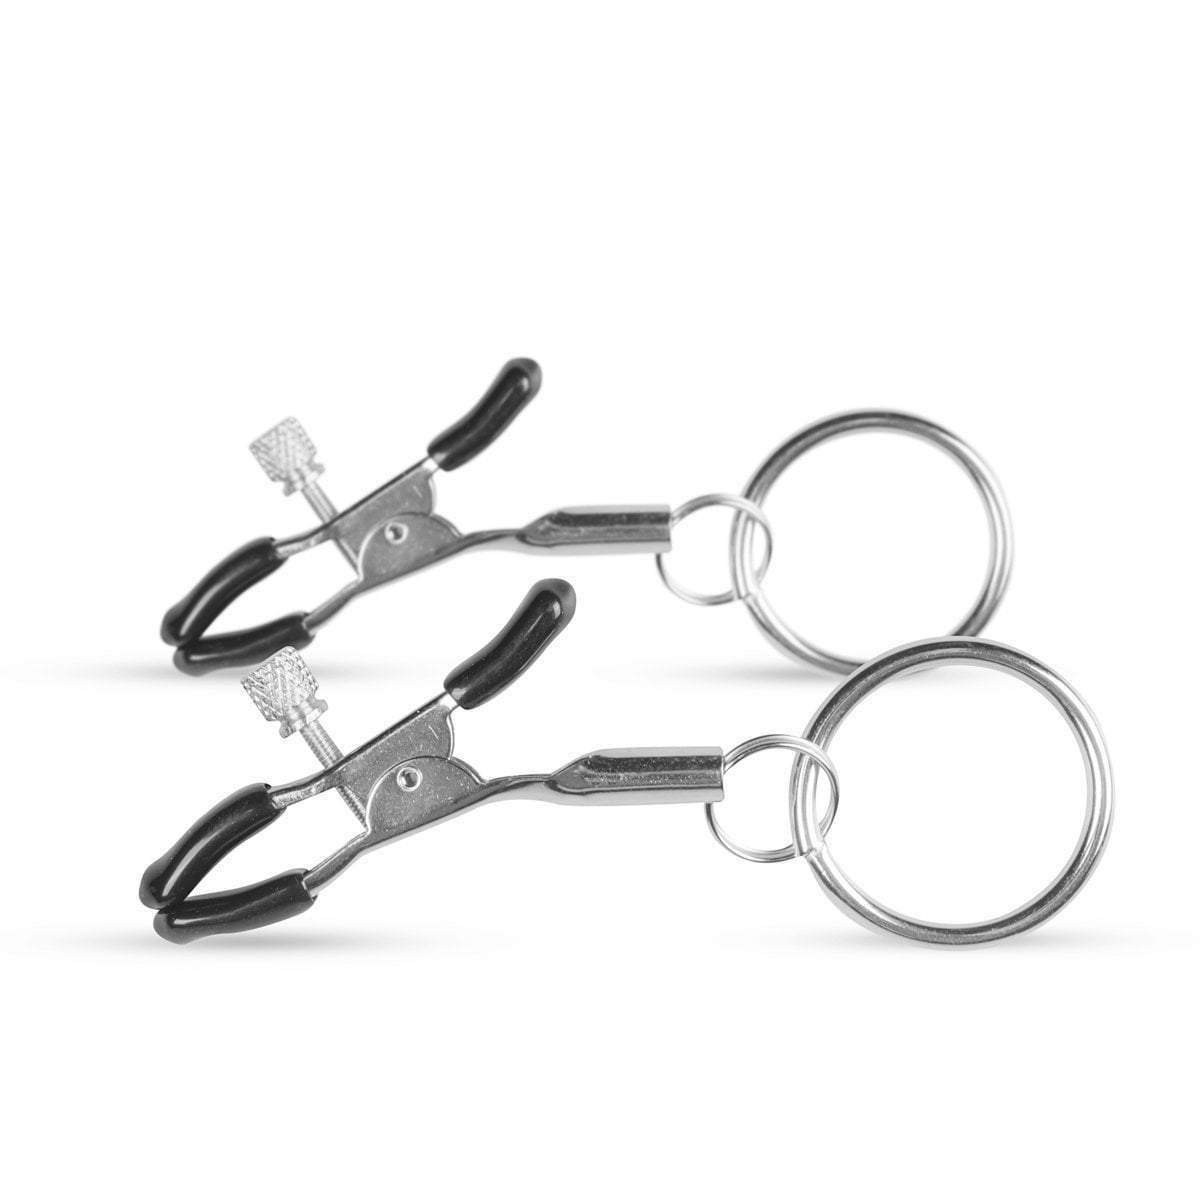 Easy Toys Fetish Collection nipple clamp Metal Nipple Clamps With Ring